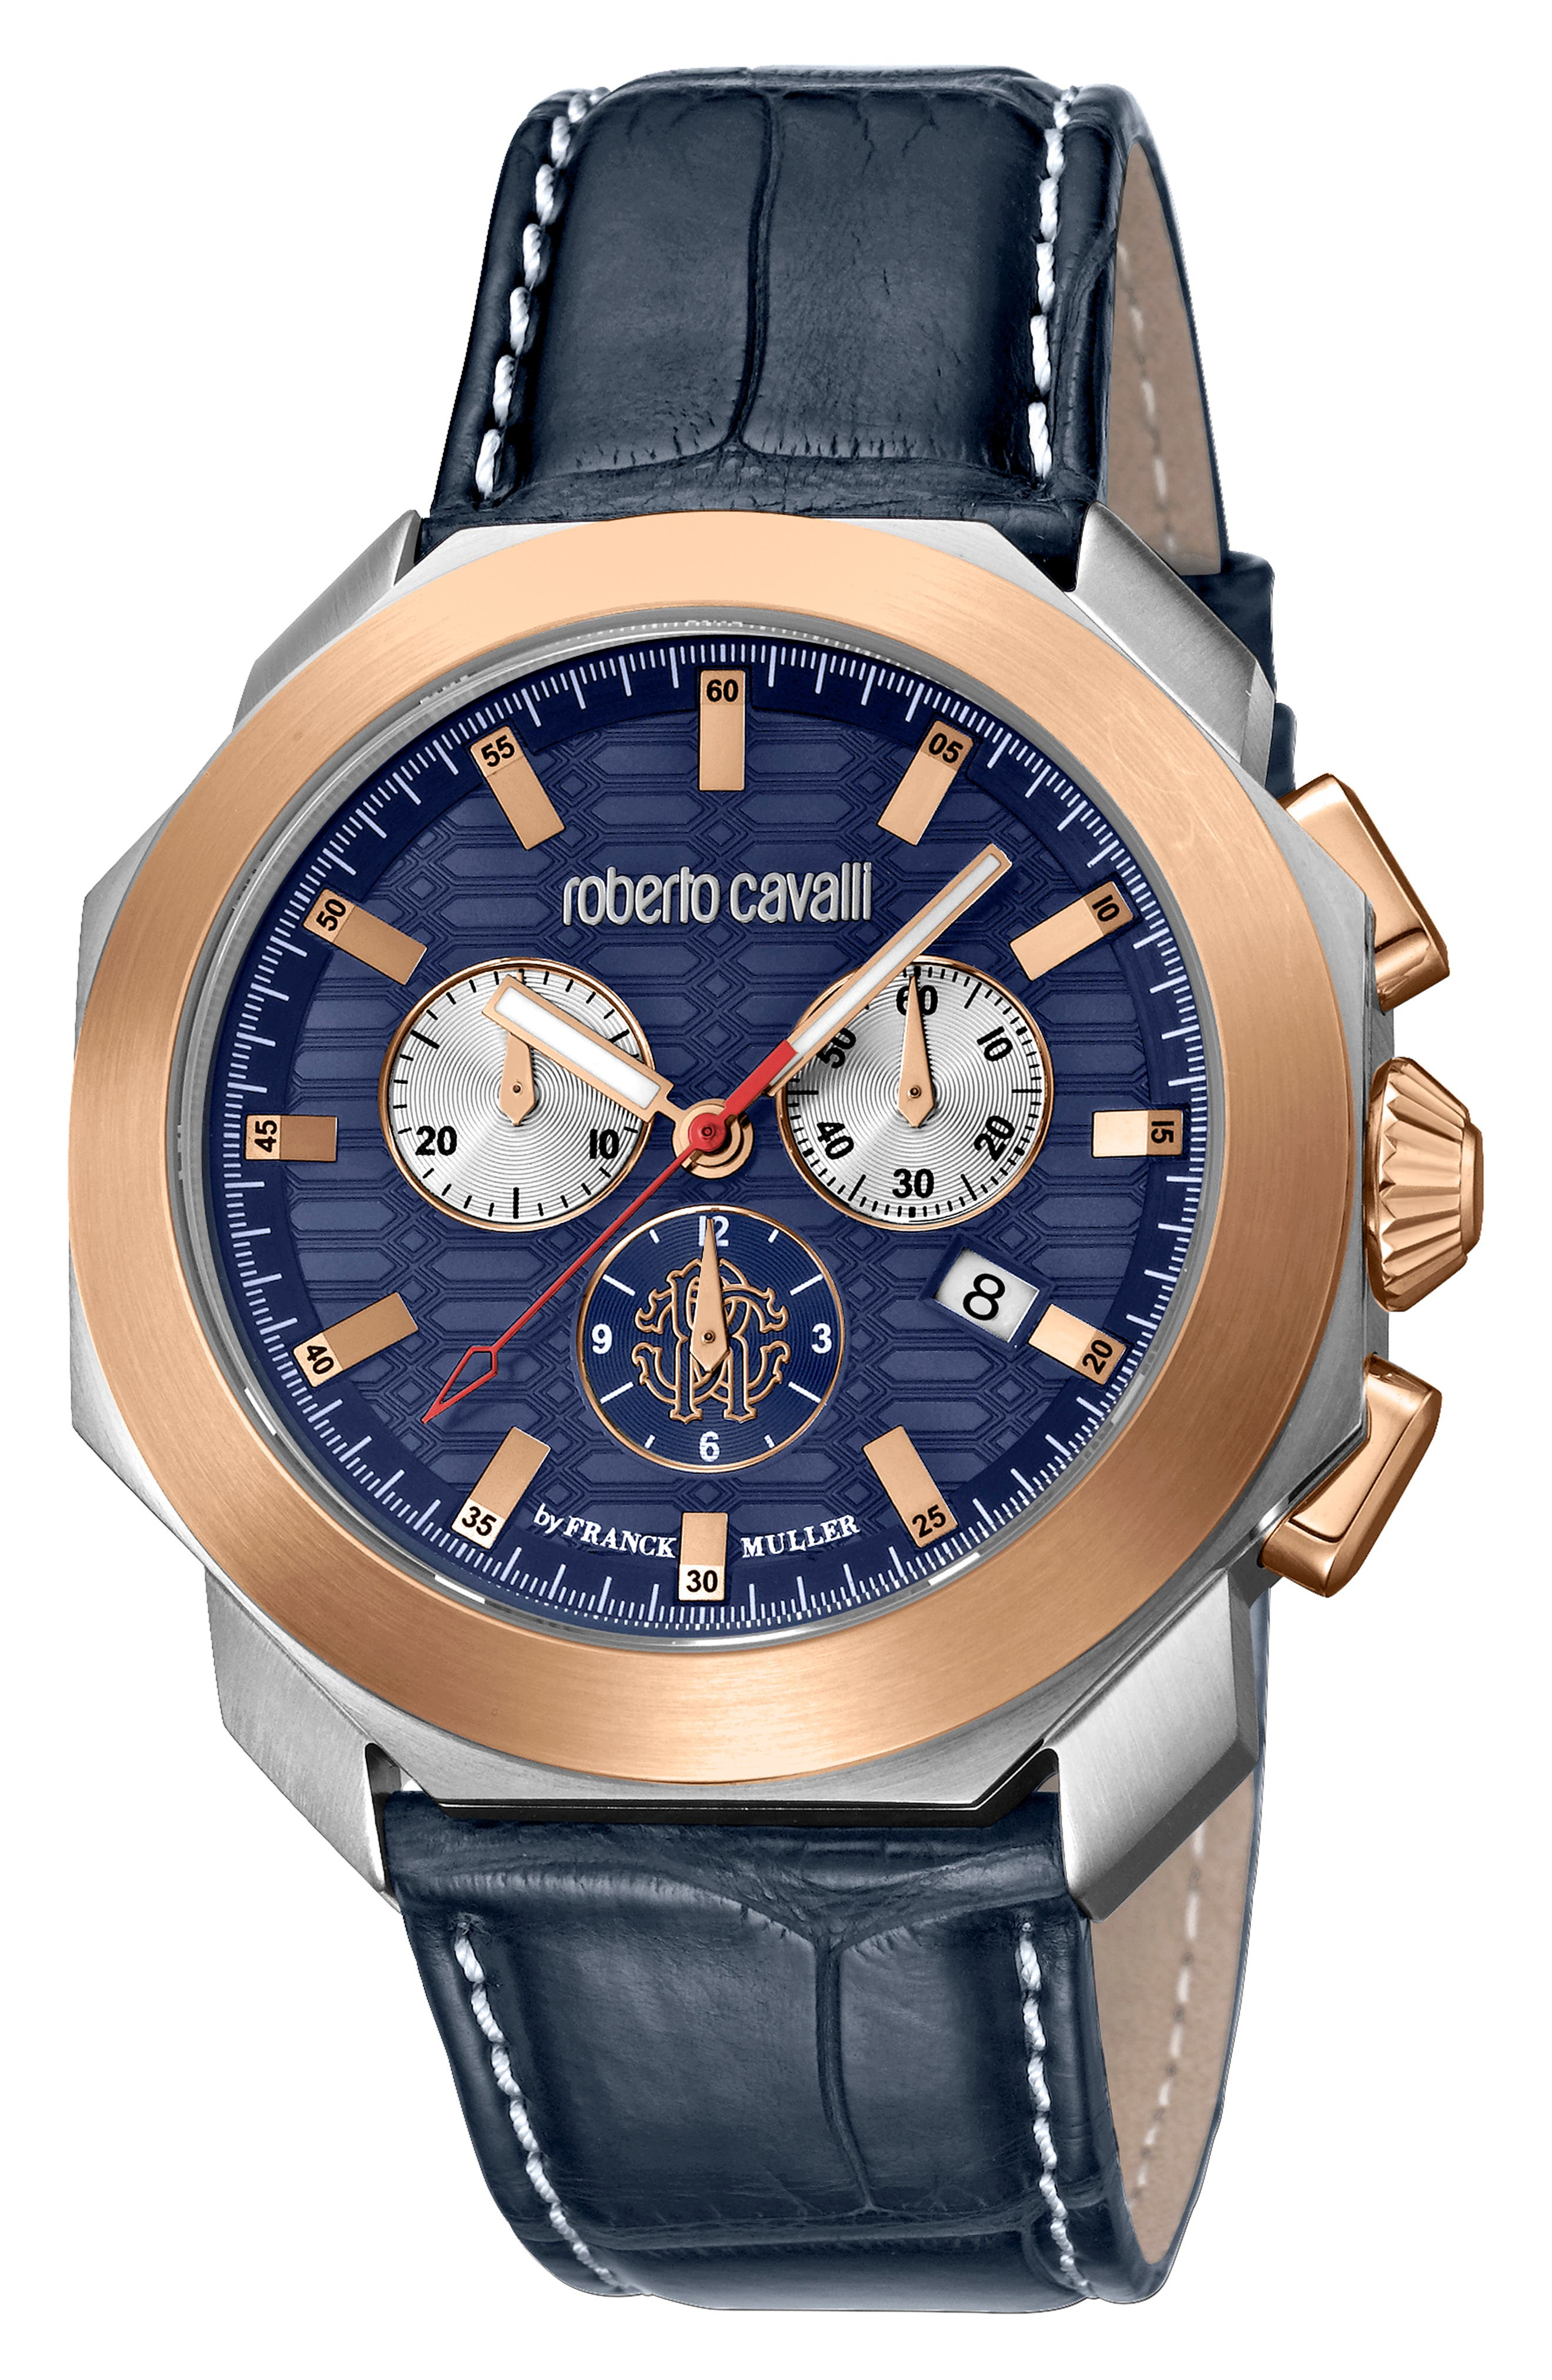 Sport Chronograph Leather Strap Watch,                         Main,                         color, BLUE/ SILVER/ BLUE